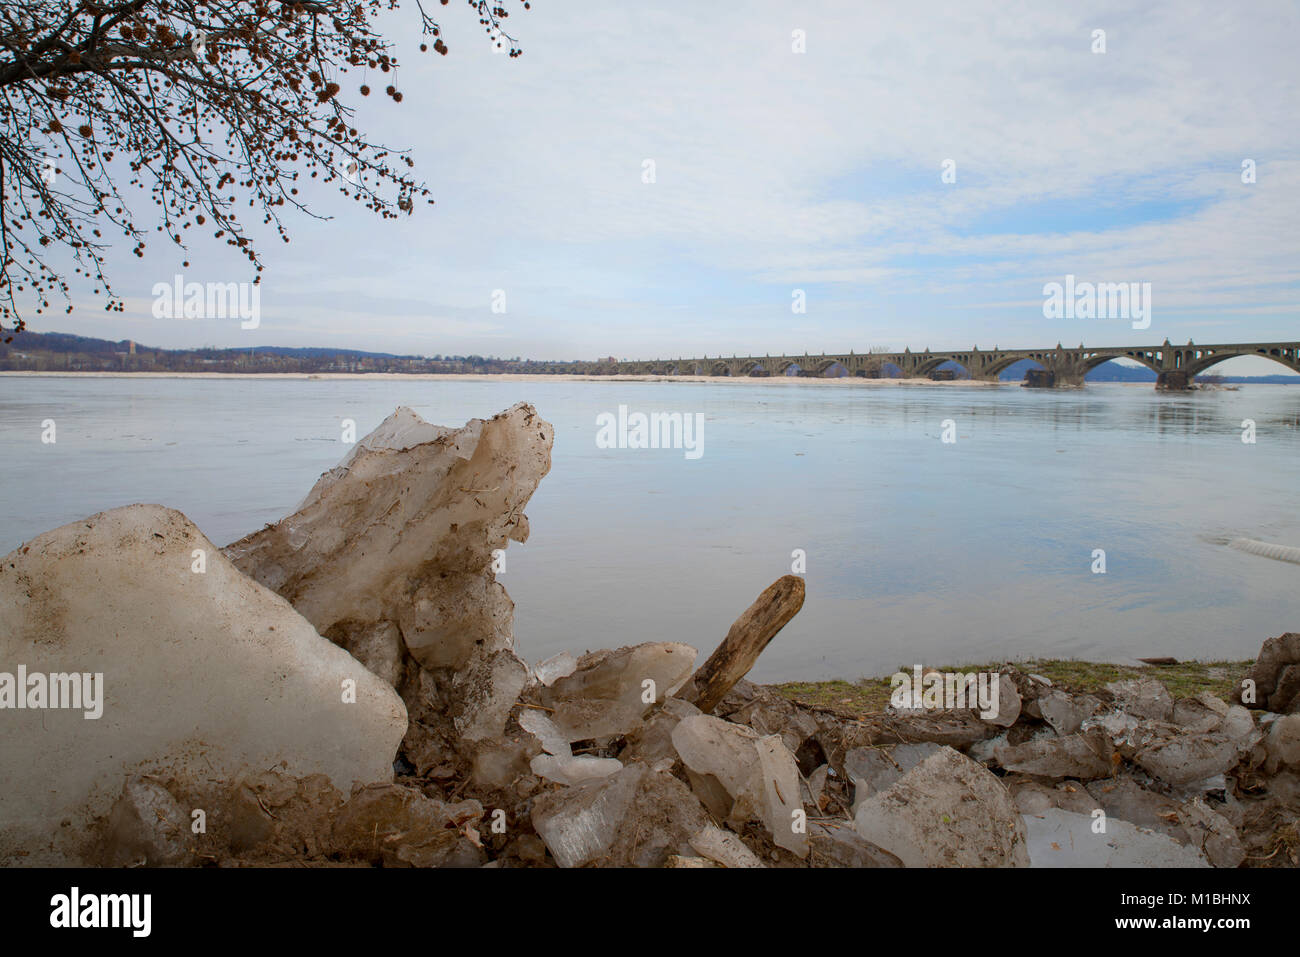 Ice jam on the Susquehanna River from York County PA - Stock Image